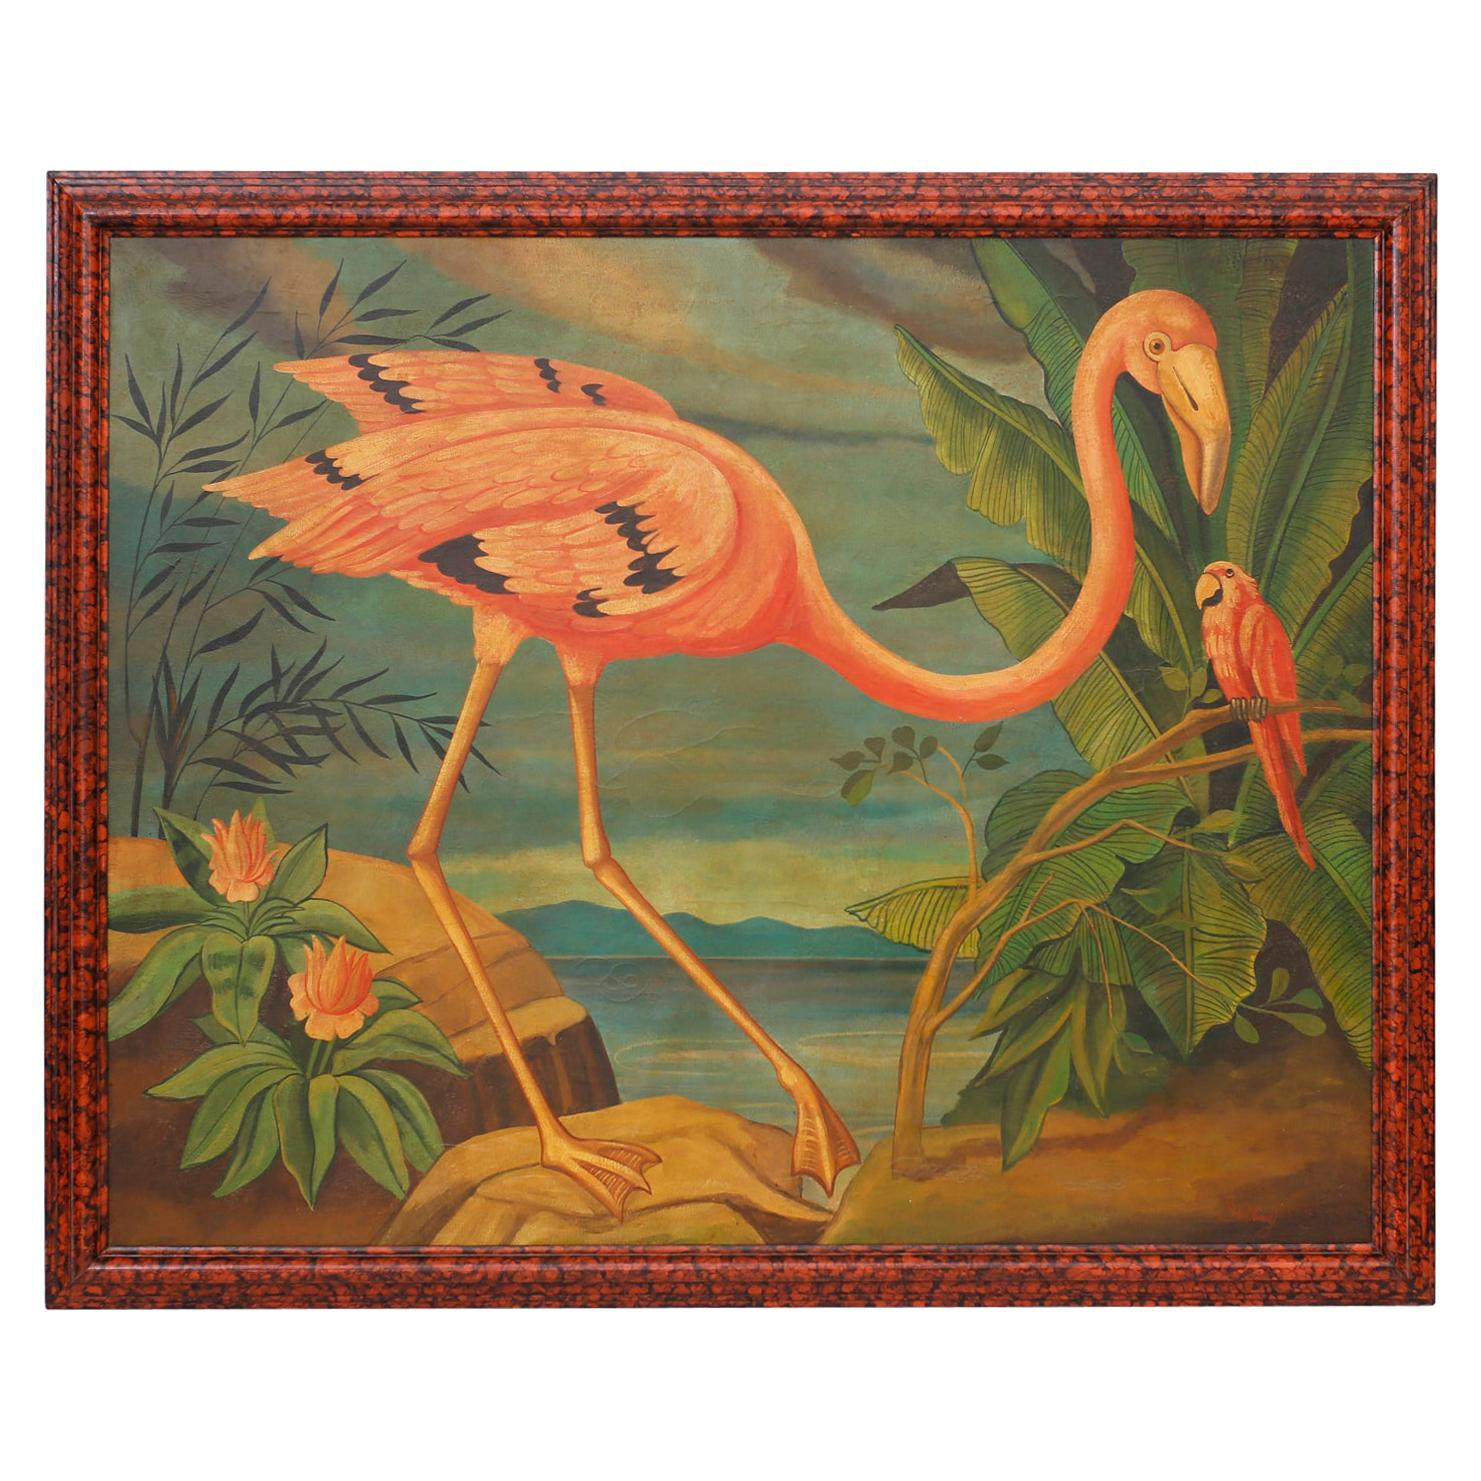 Large Oil Painting on Canvas of a Flamingo by William Skilling